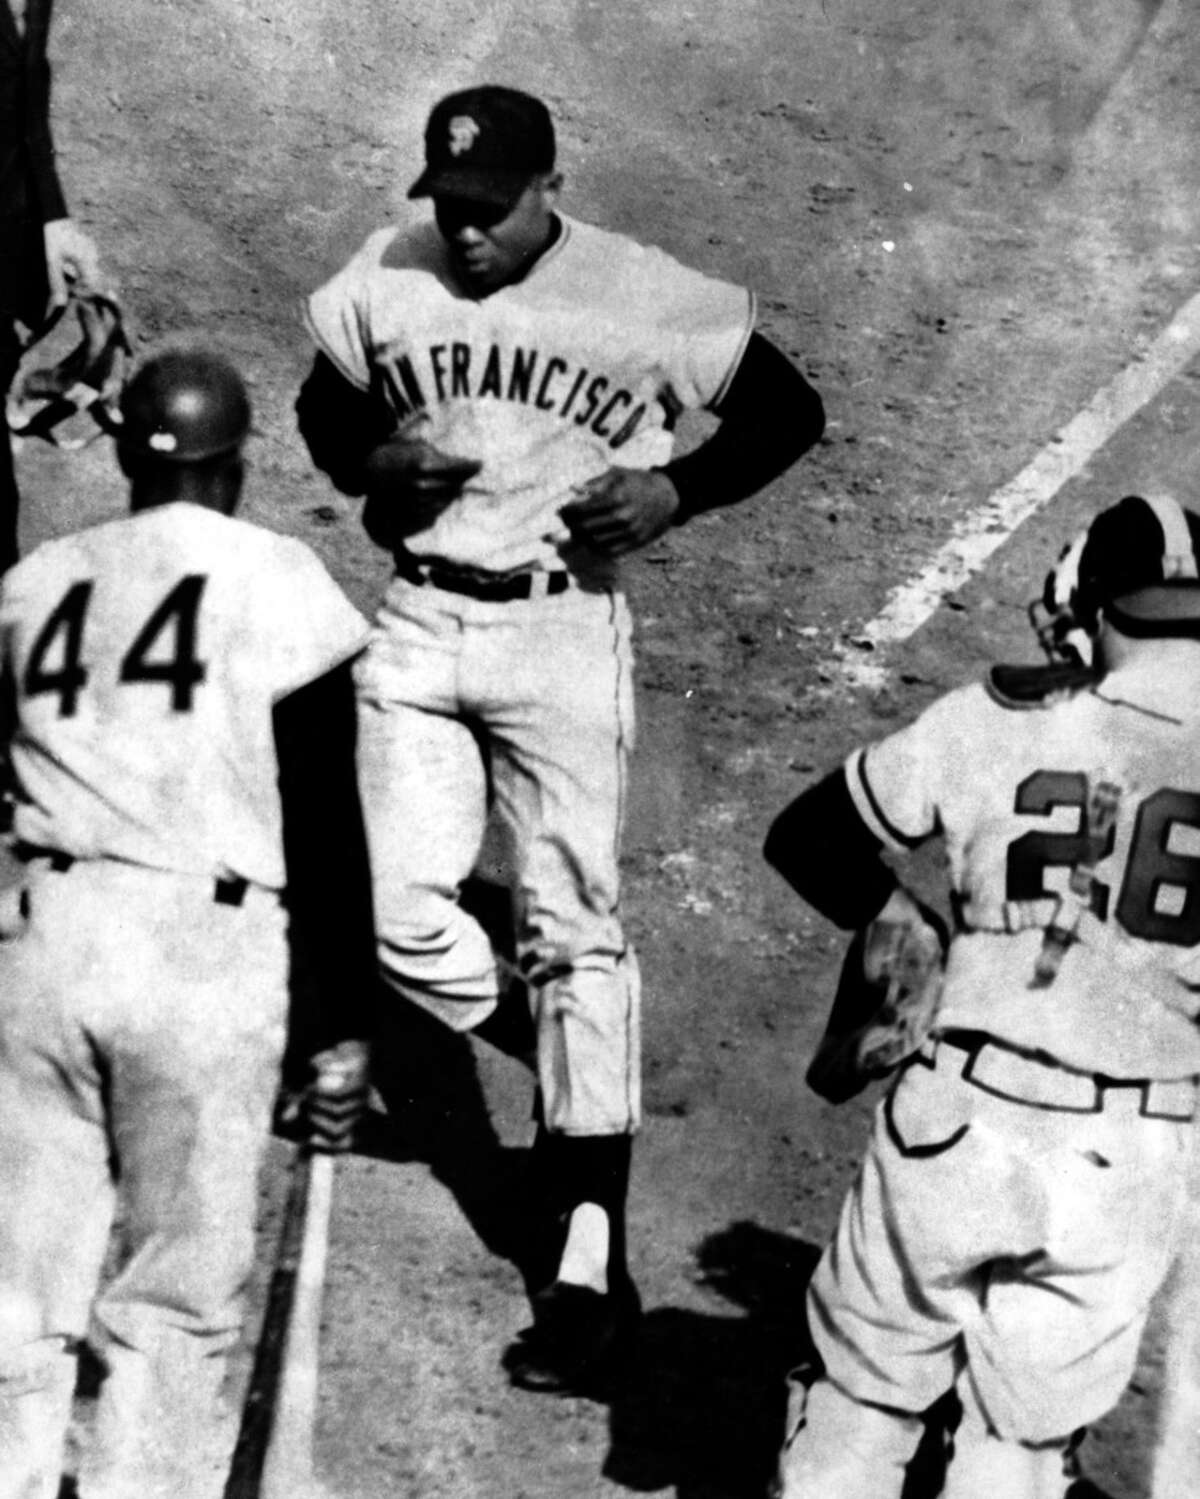 Willie Mays, center, jogs toward home plate after his fourth homer in the eighth inning against the Braves on April 30, 1961 in Milwaukee. Willie McCovey, left, and Braves catcher Hawk Taylor, right, watch the run score.